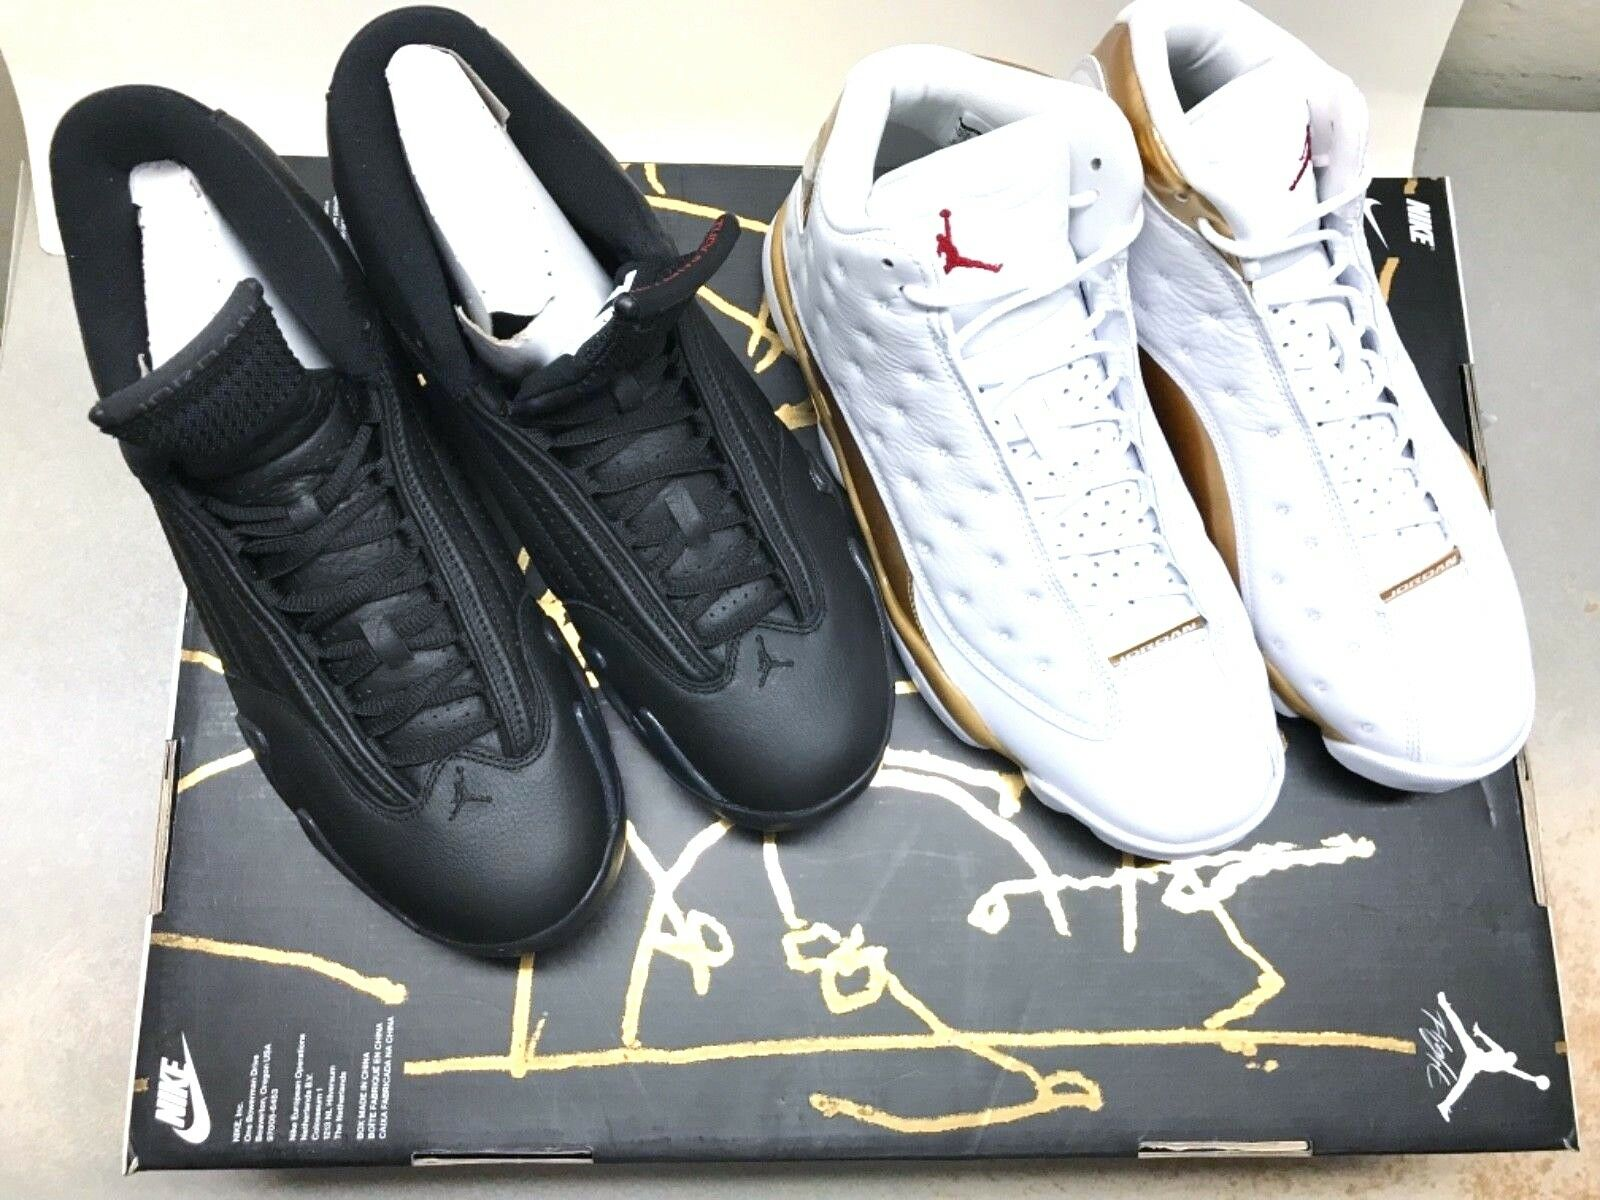 NIKE AIR JORDAN DMP FINALS PACK DEFINING MOMENTS SIZE MEN'S 10.5 Price reduction best-selling model of the brand